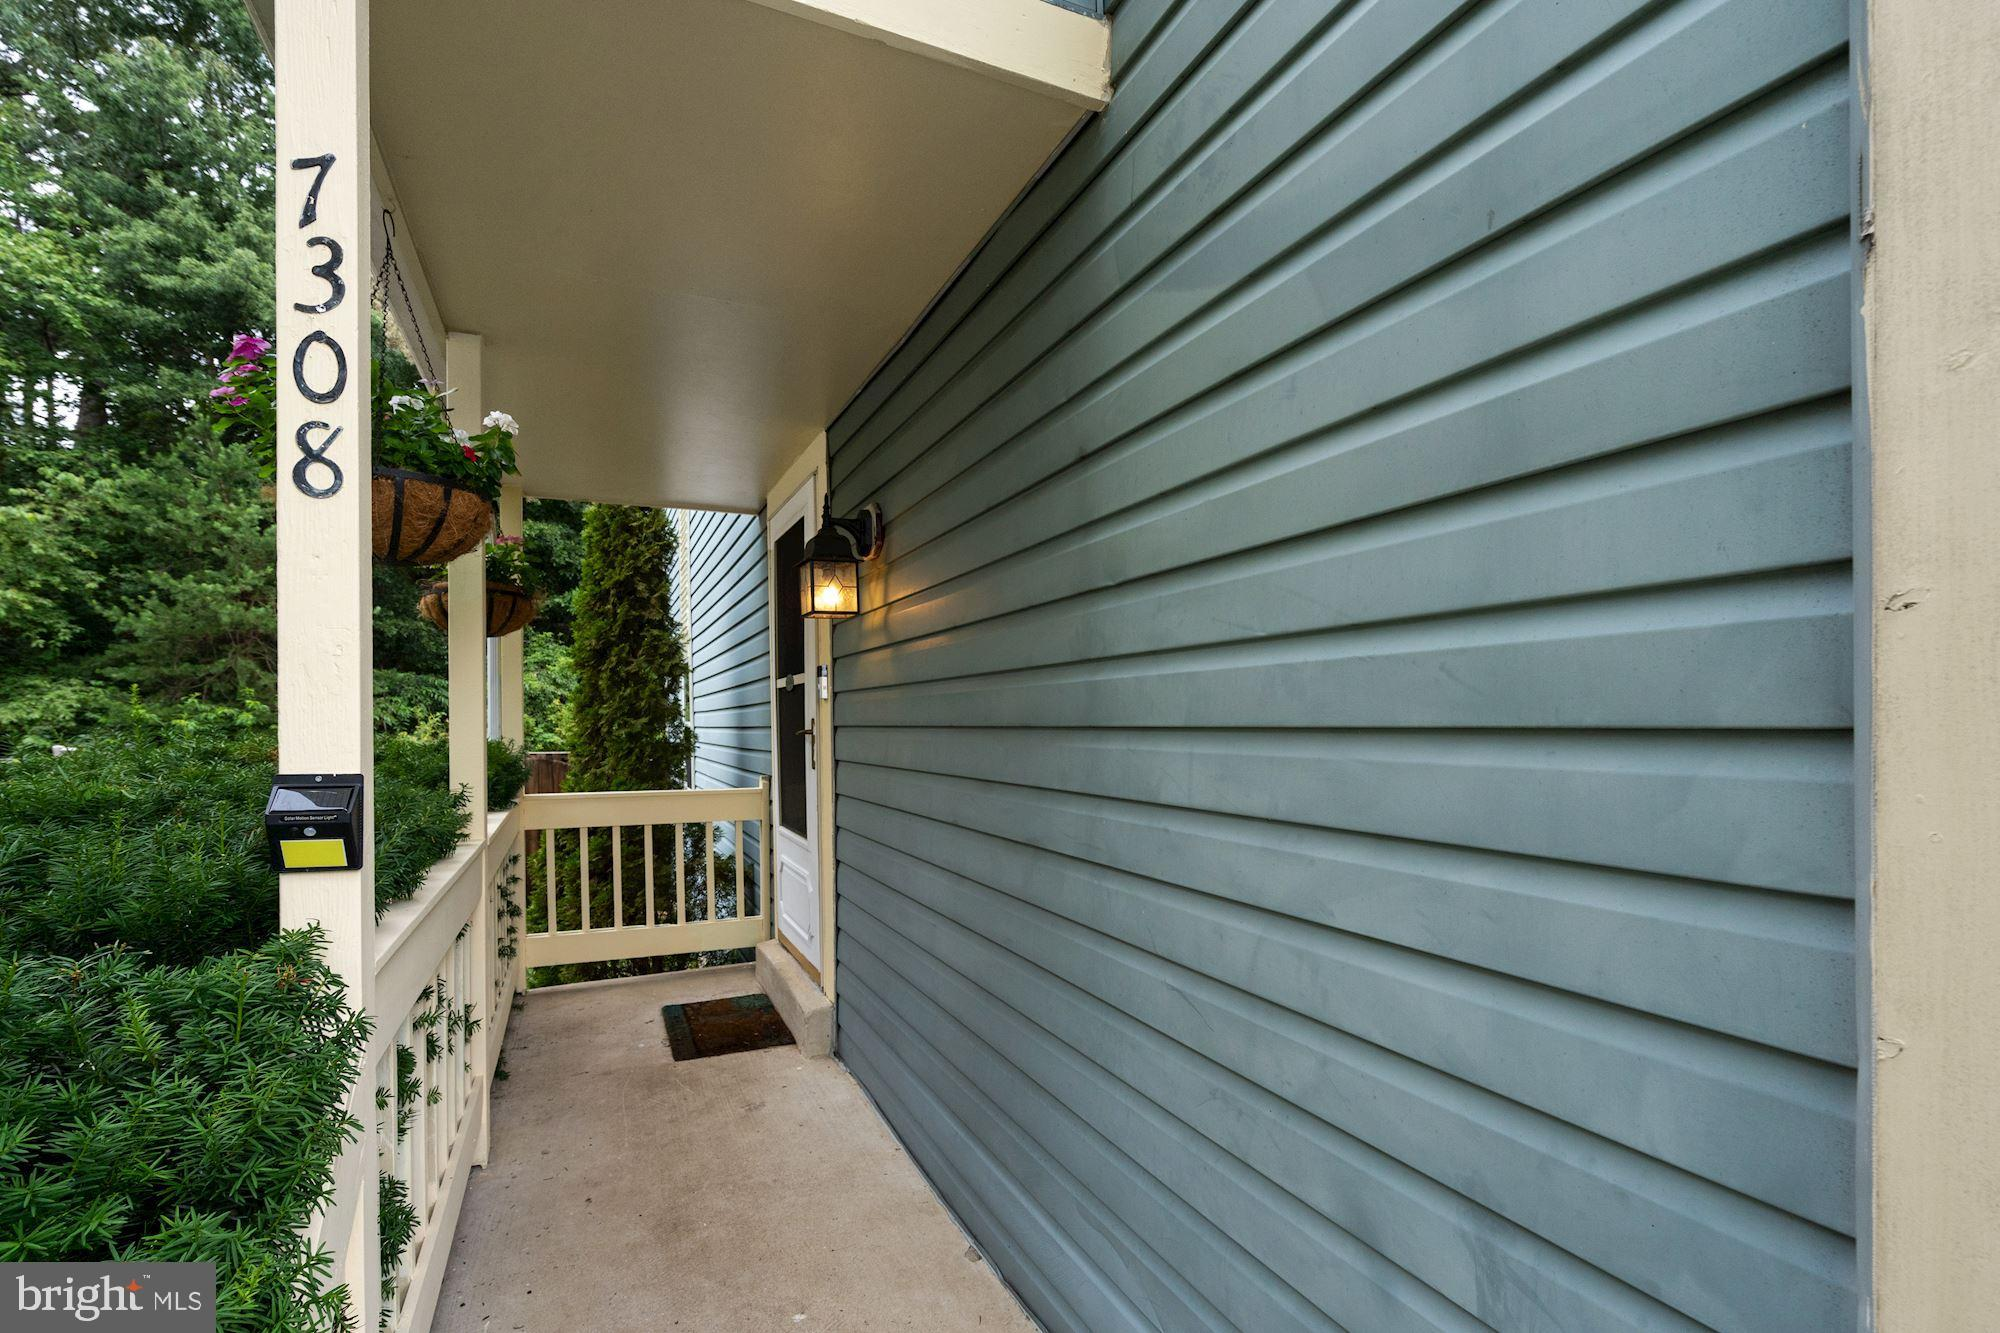 Lovely end unit townhouse in desirable Kingstowne! The inviting porch welcomes you in. Hardwoods on